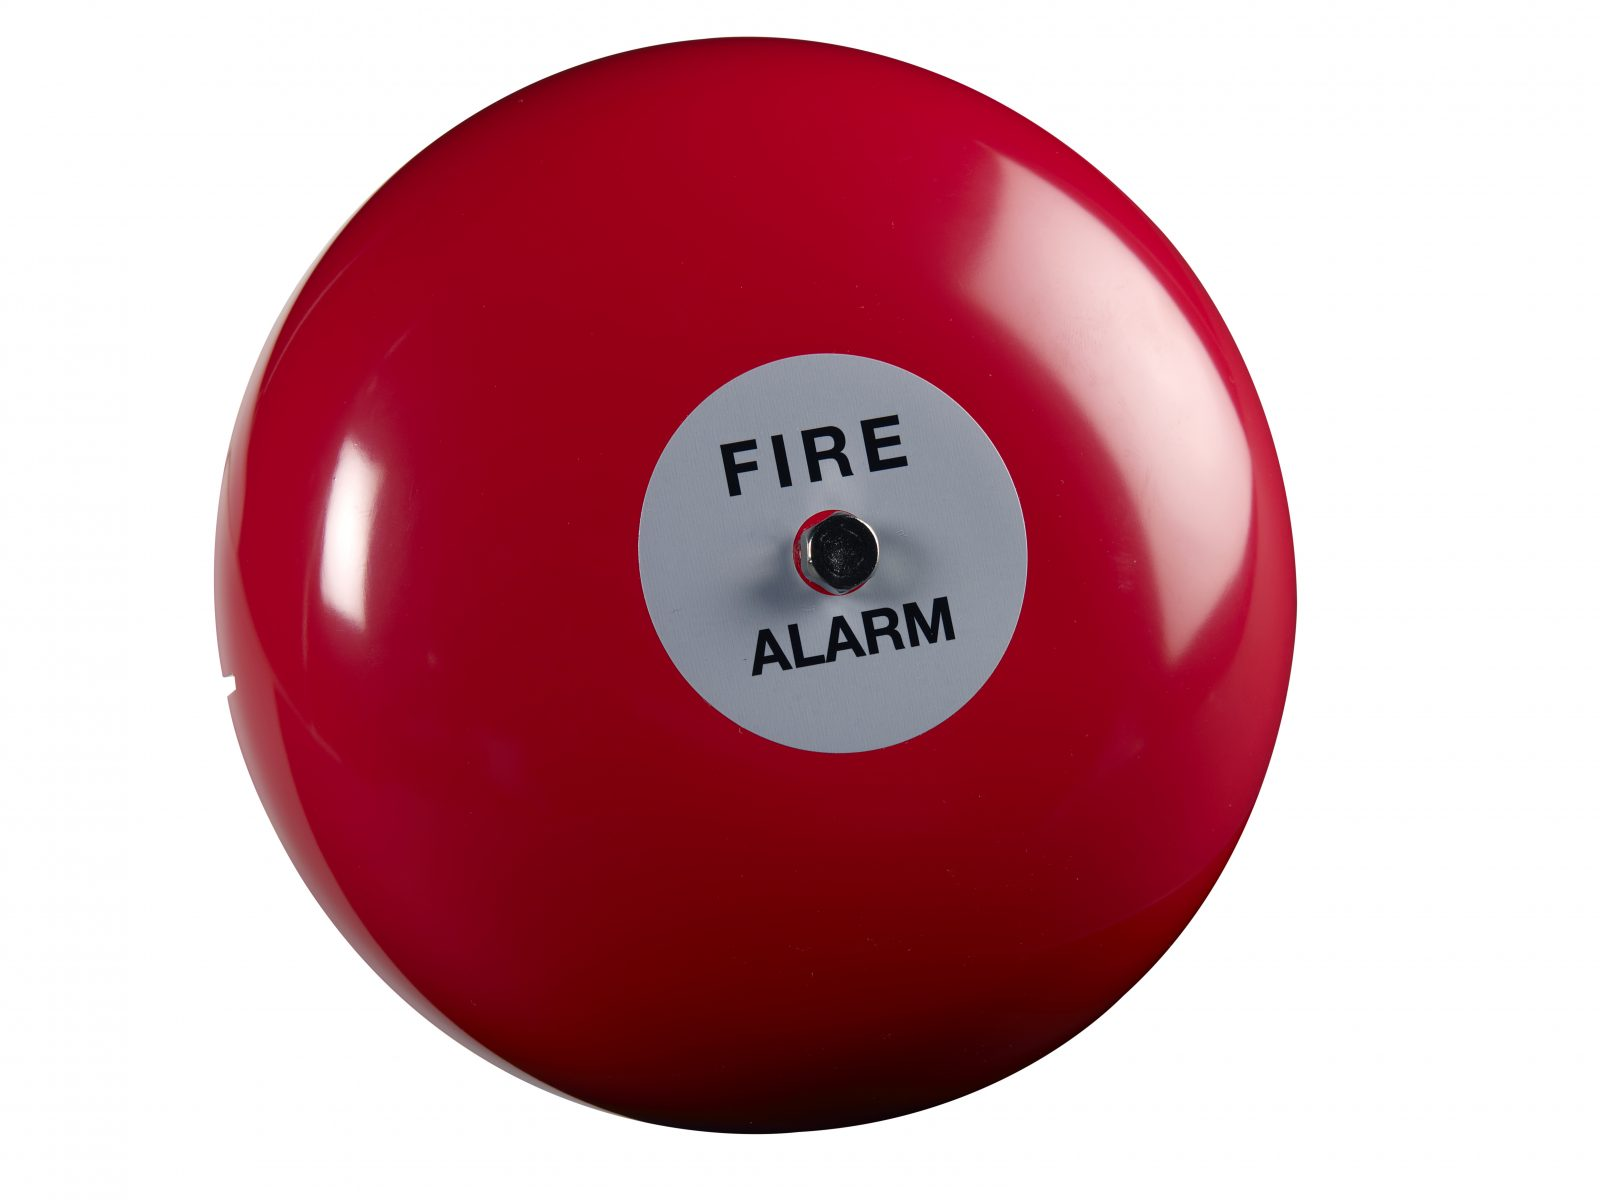 FireClass 24V Conventional 8 Electronic Motorised Outdoor Weatherproof Sounder Fire Alarm Bell Red IP65 2601016